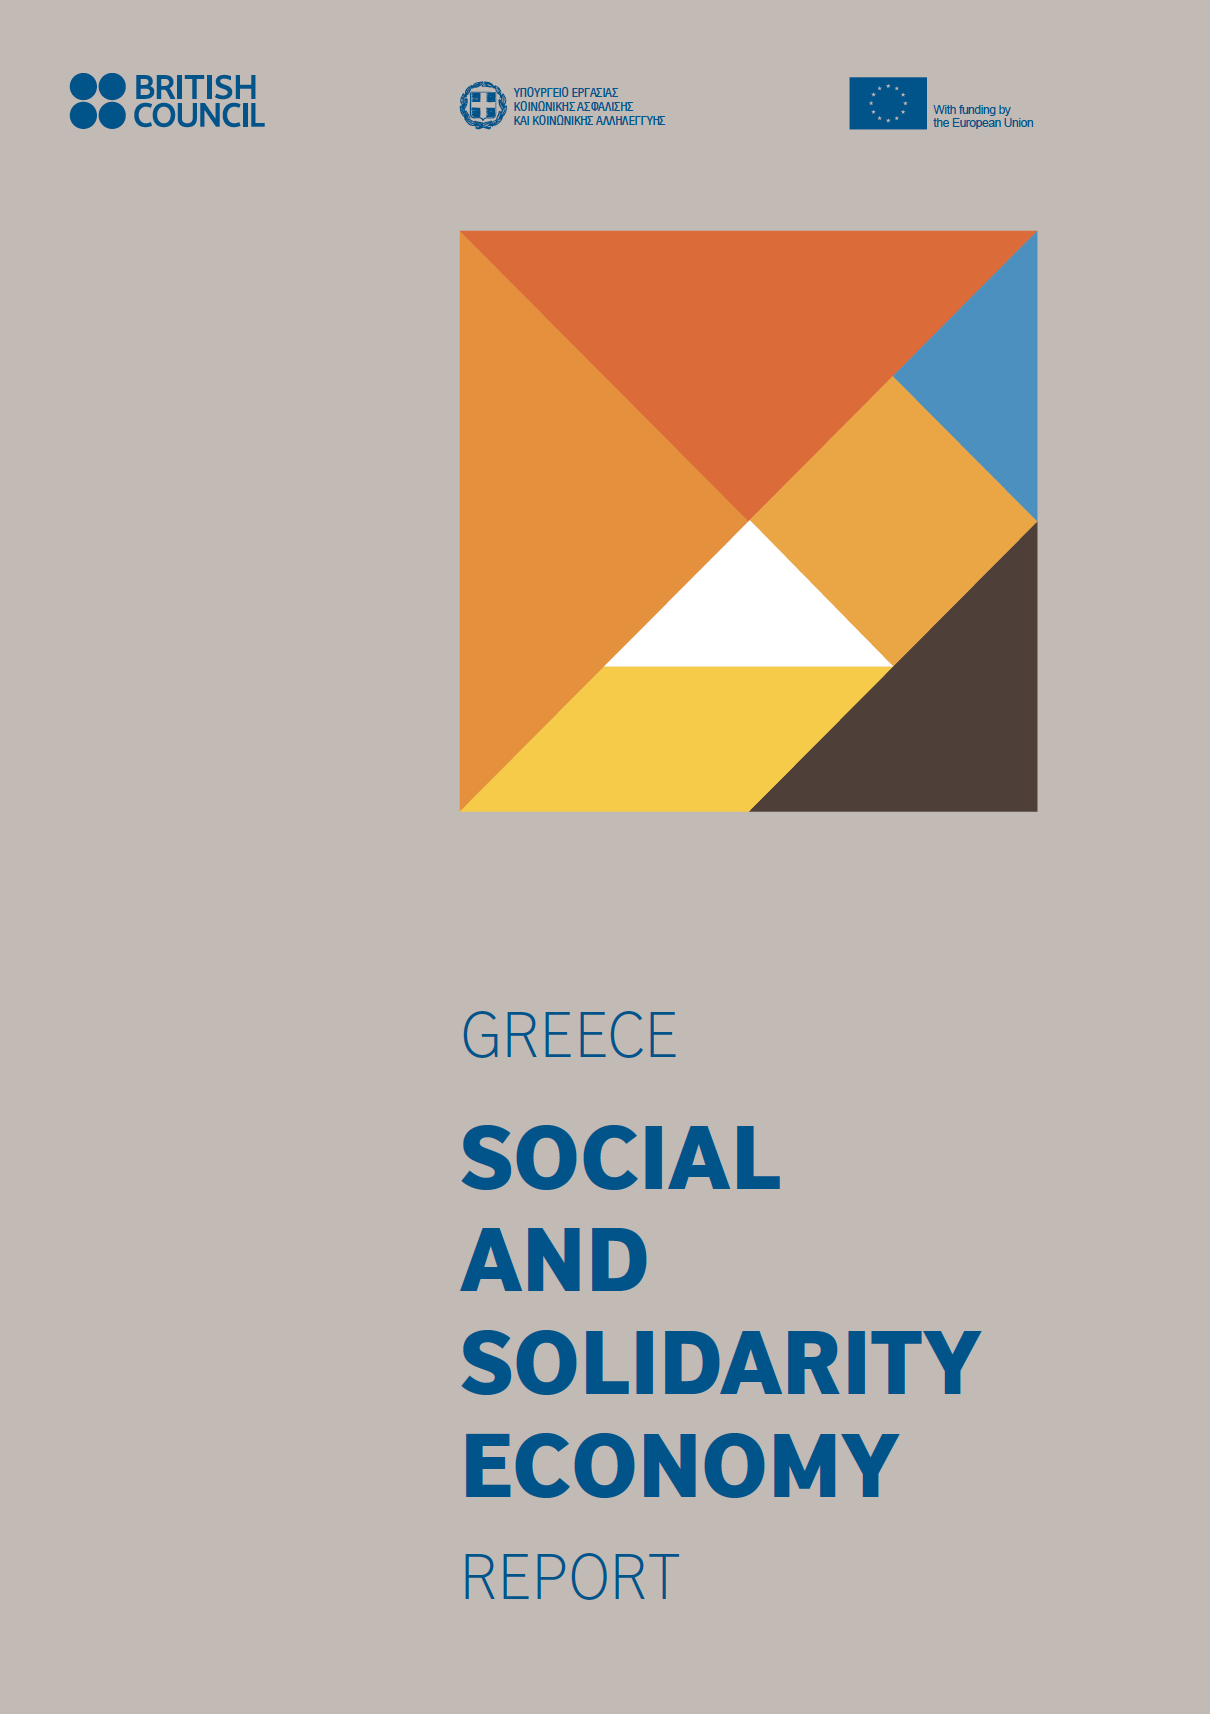 British Council Greece SSE report cover